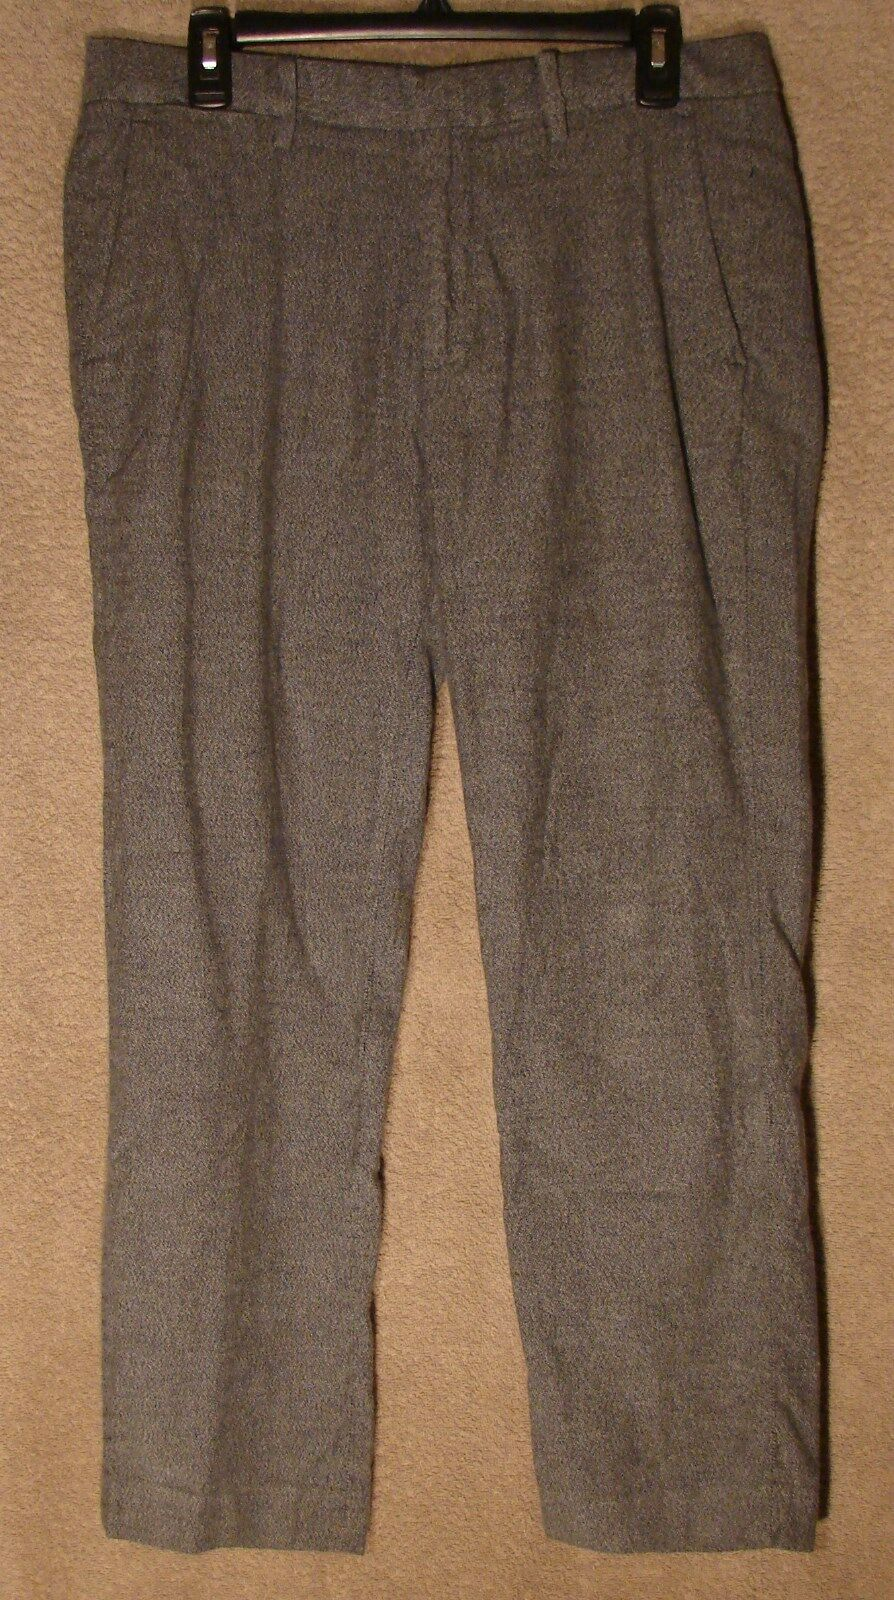 NWT bluee-Grey Tweed Straight Fit Cotton Foundation Dress Pants by Bonobos, 32X30